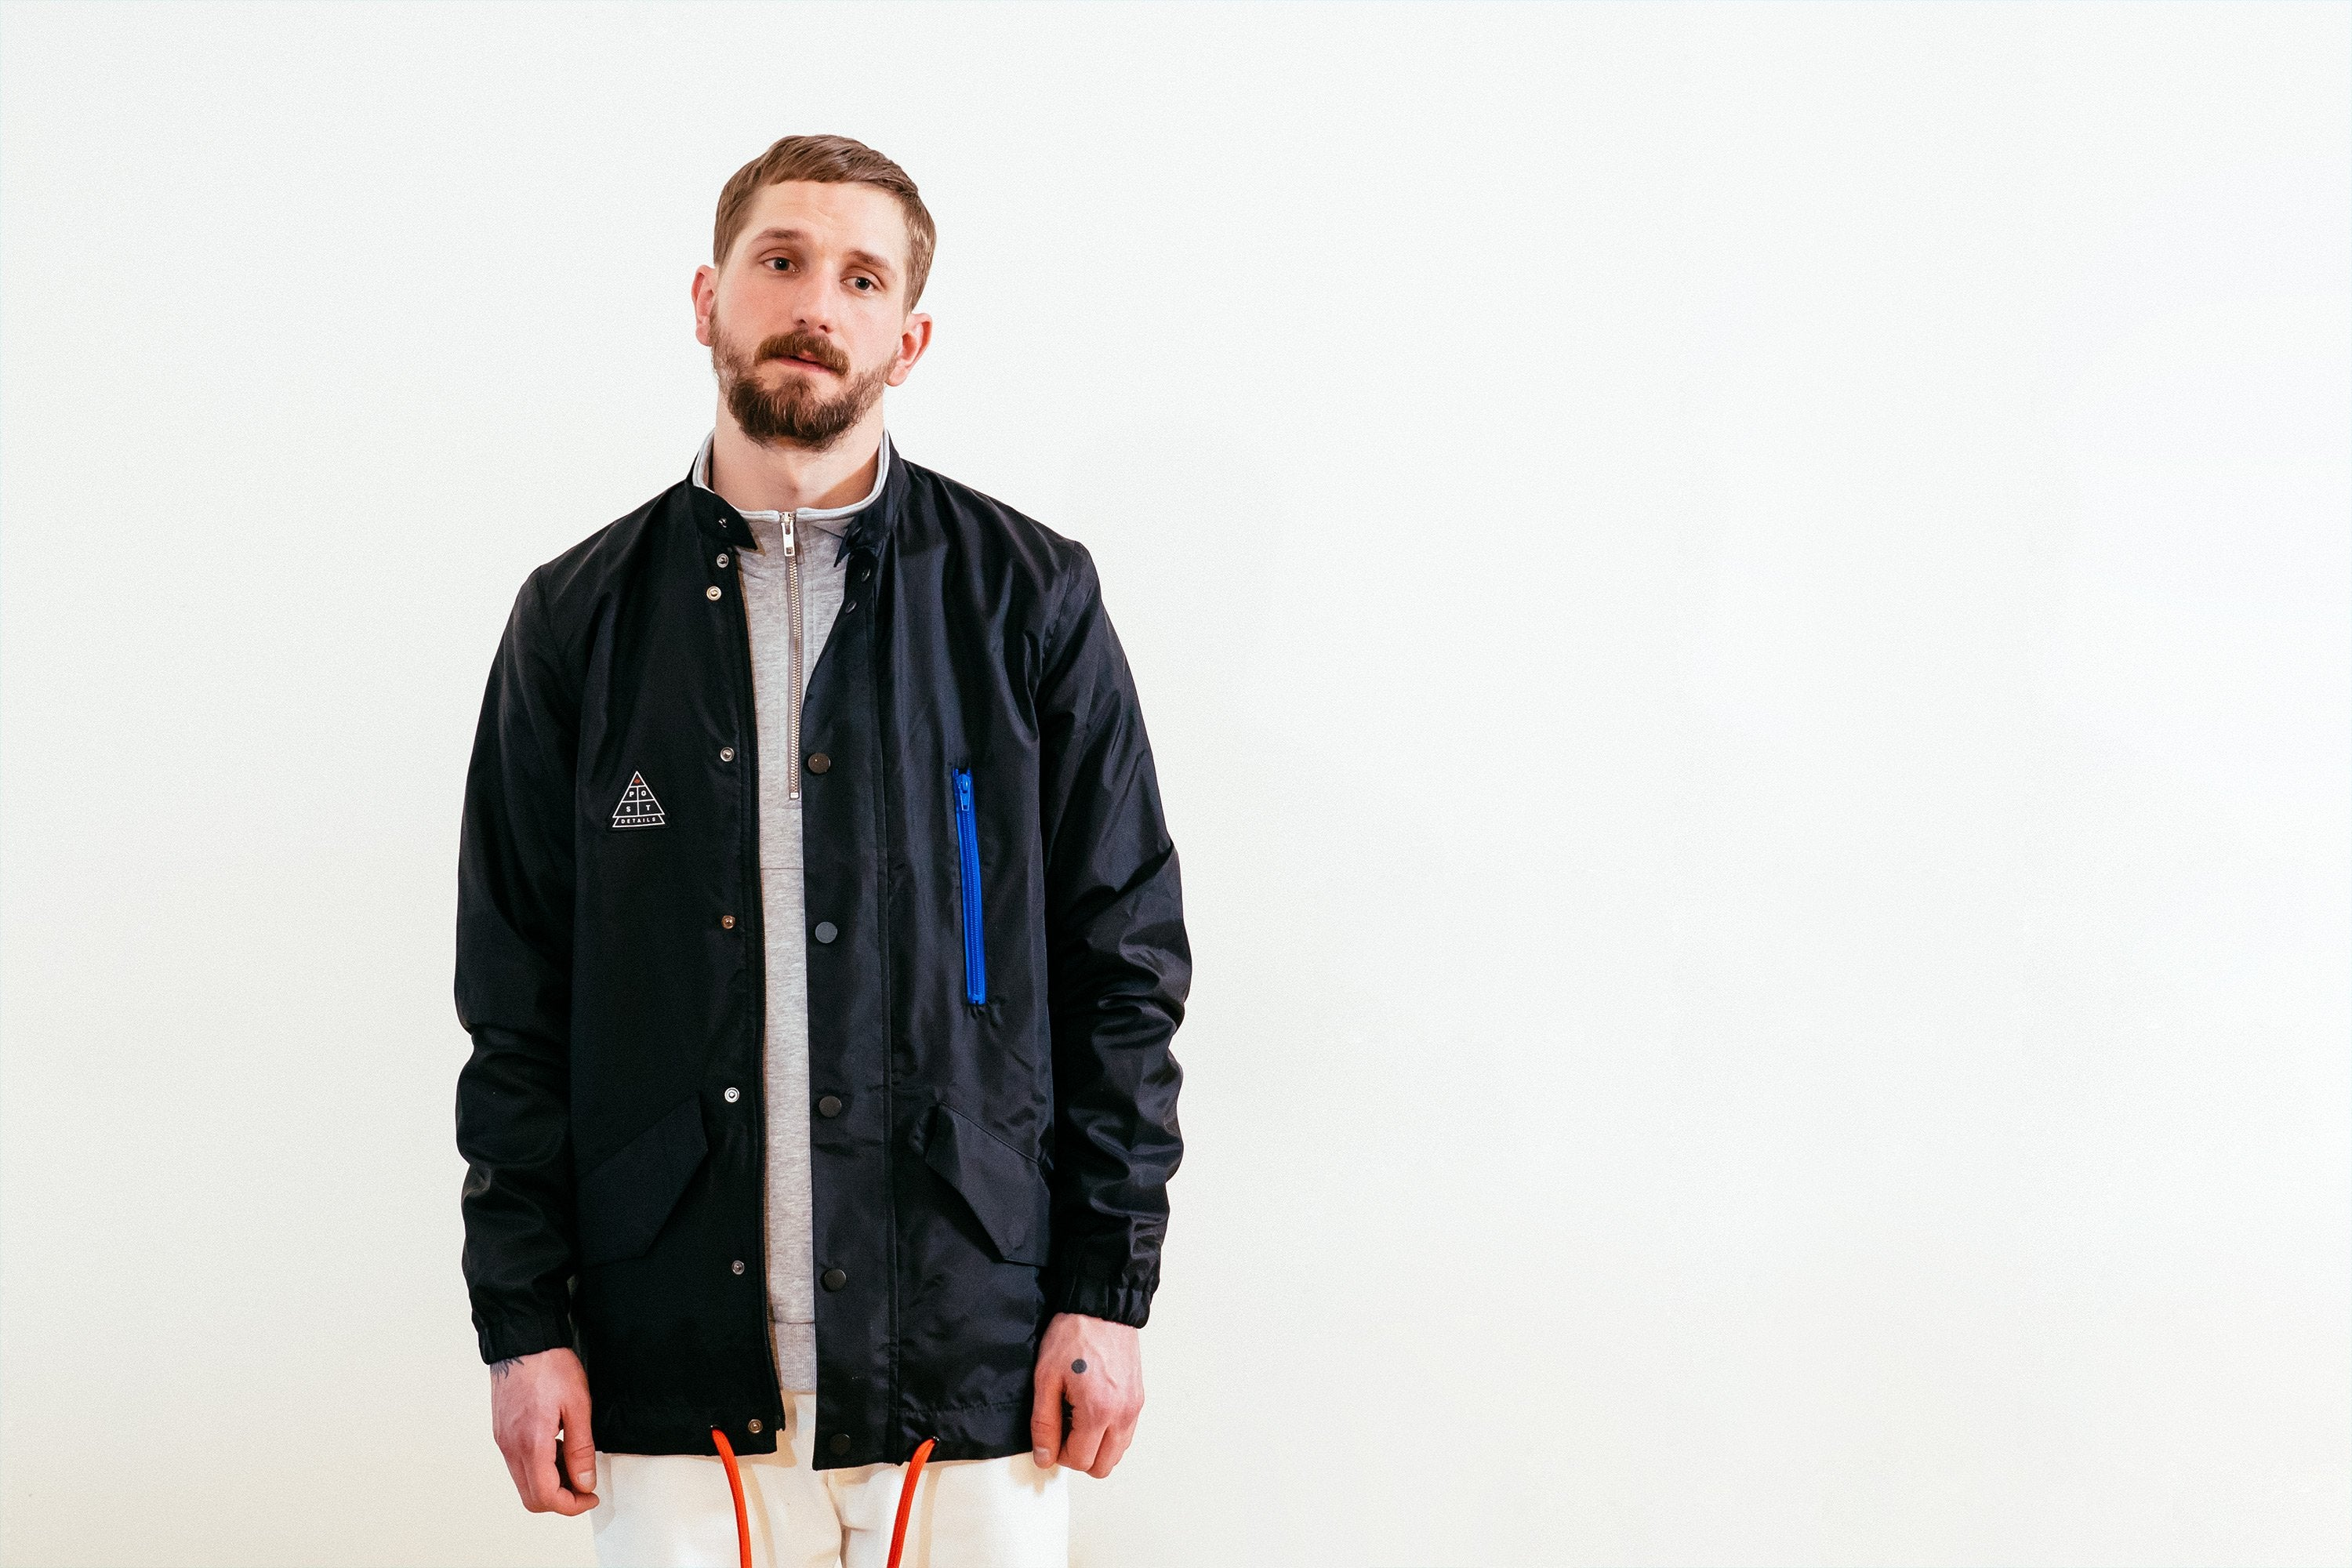 Post Shuffleboard Hoodless Parka Windbreaker